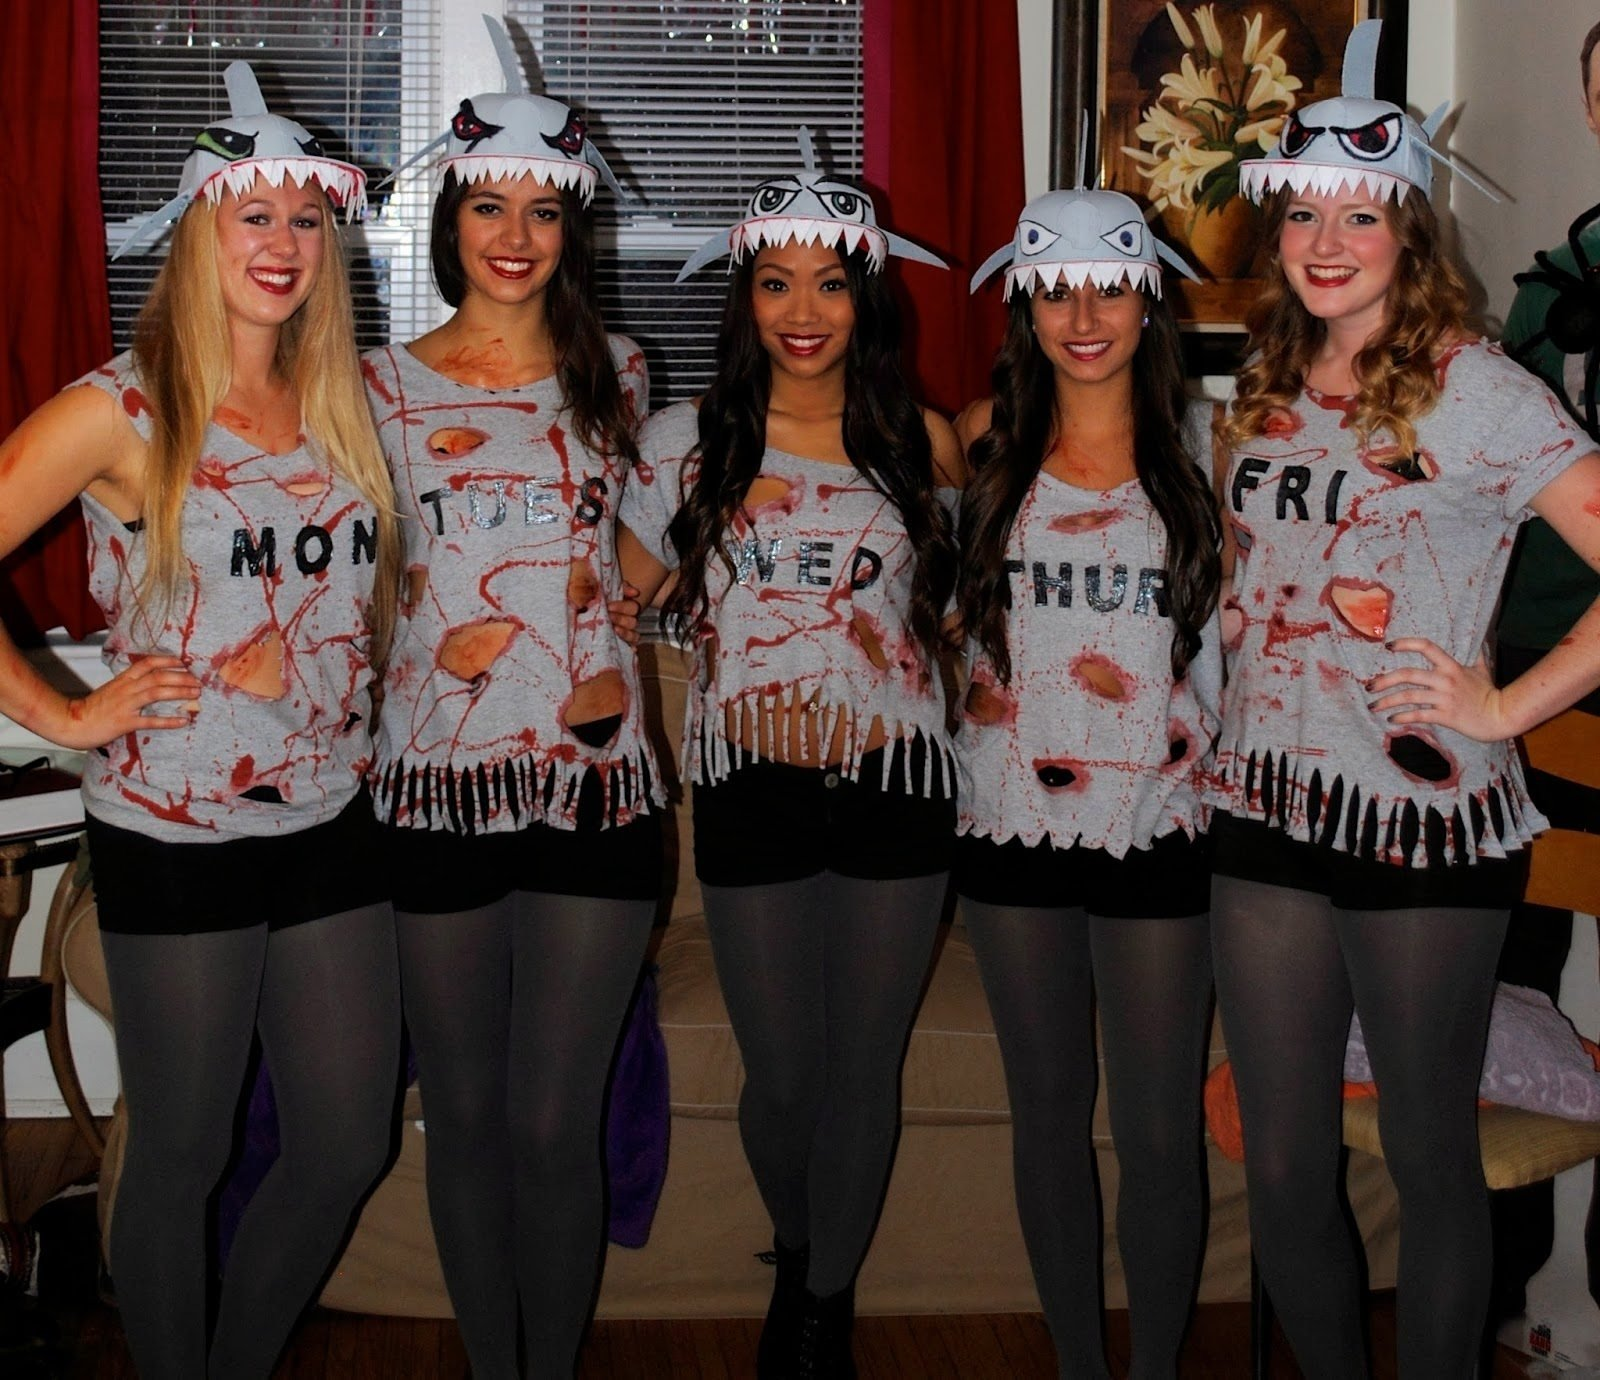 10 Best Group Halloween Costume Ideas For Work this list of group halloween costume ideas will blow your mind 24 2020